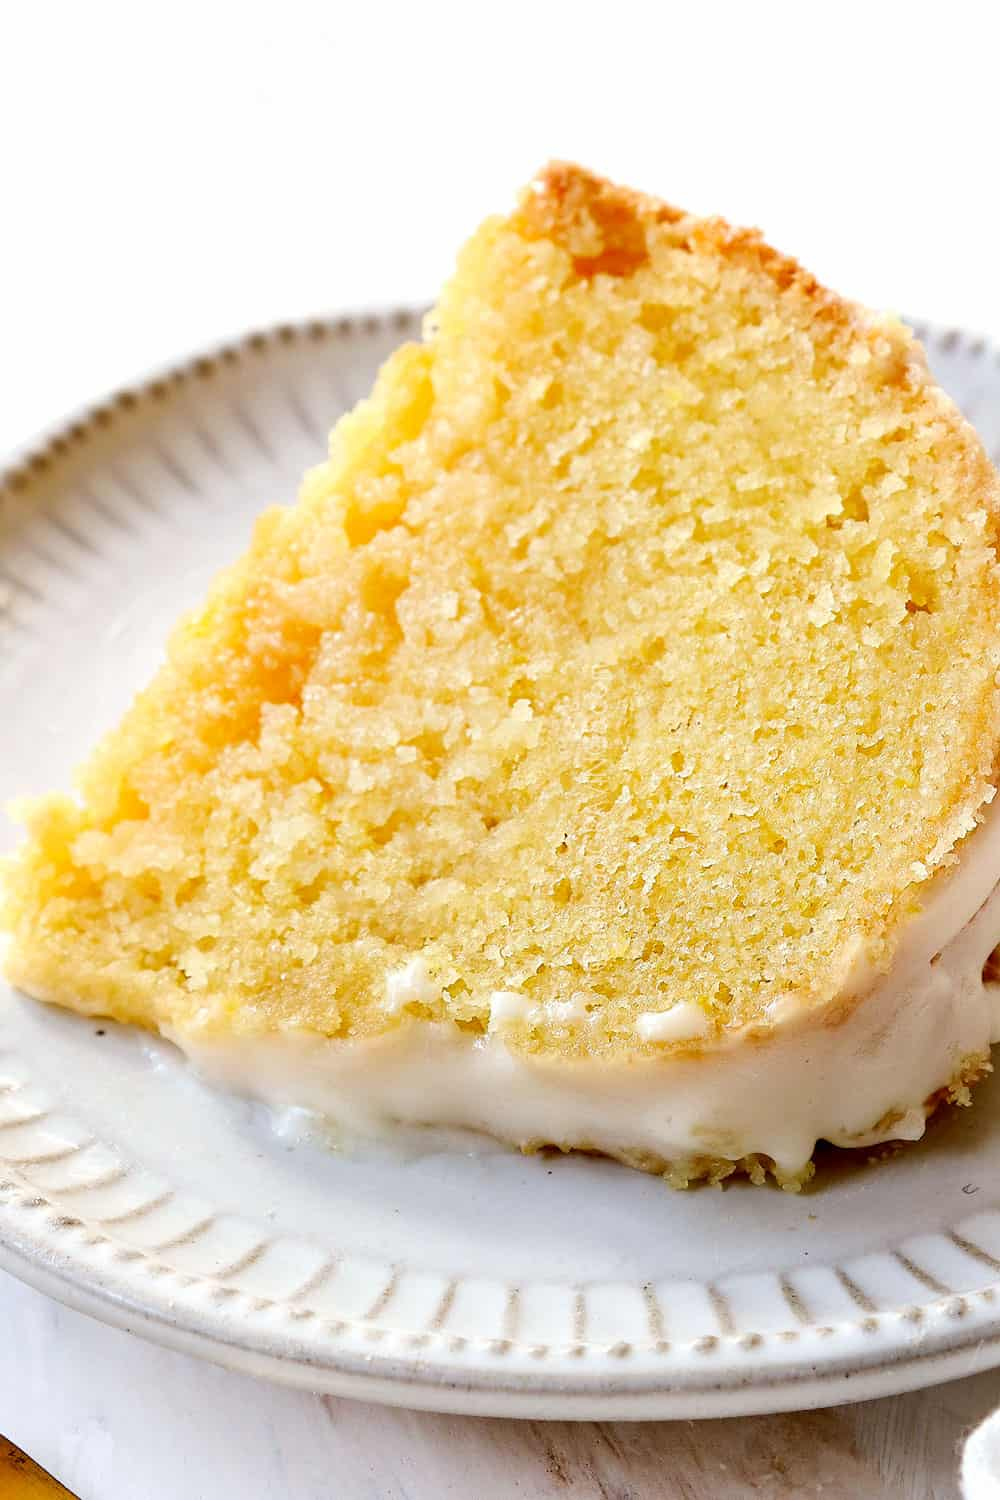 a slice of lemon pound cake laying on on a plate showing how moist it is